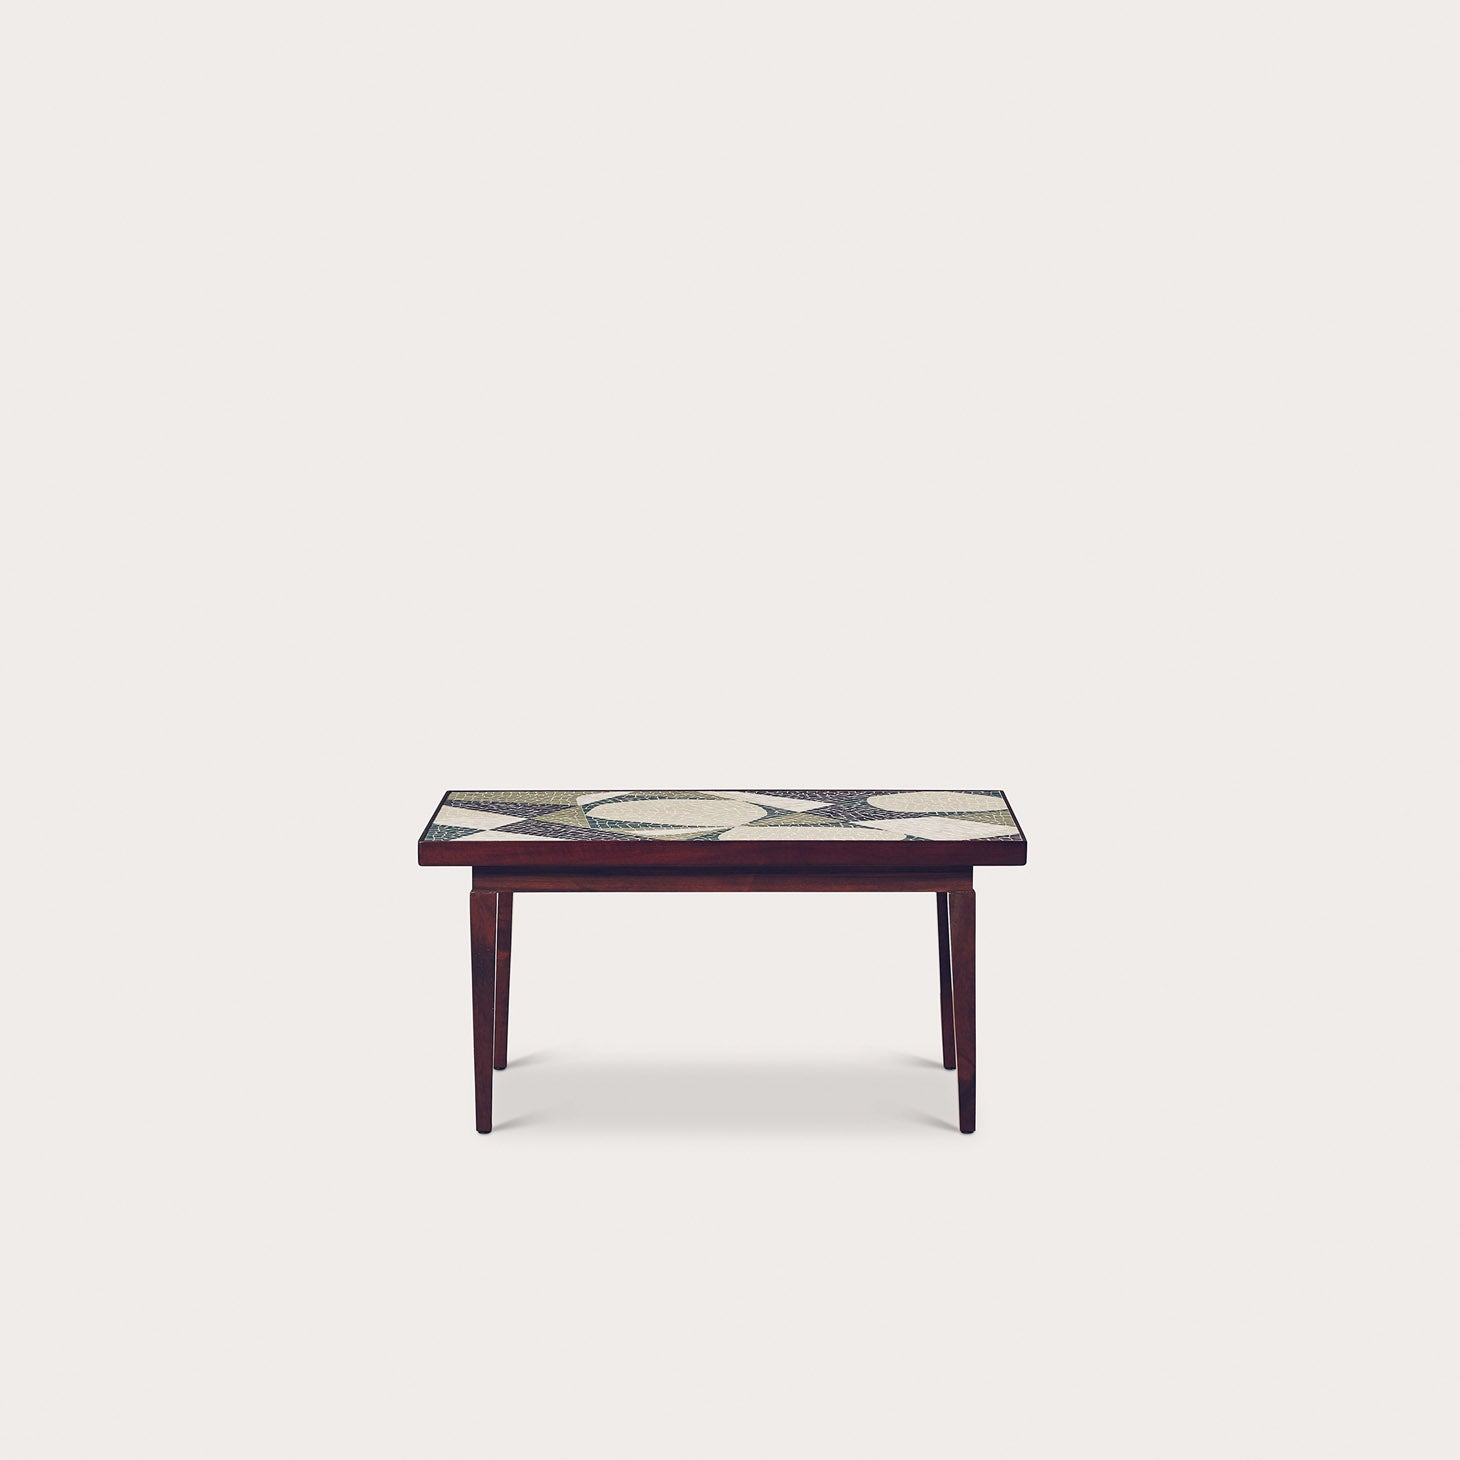 Otto Tables Paulo Werneck Designer Furniture Sku: 003-230-10125